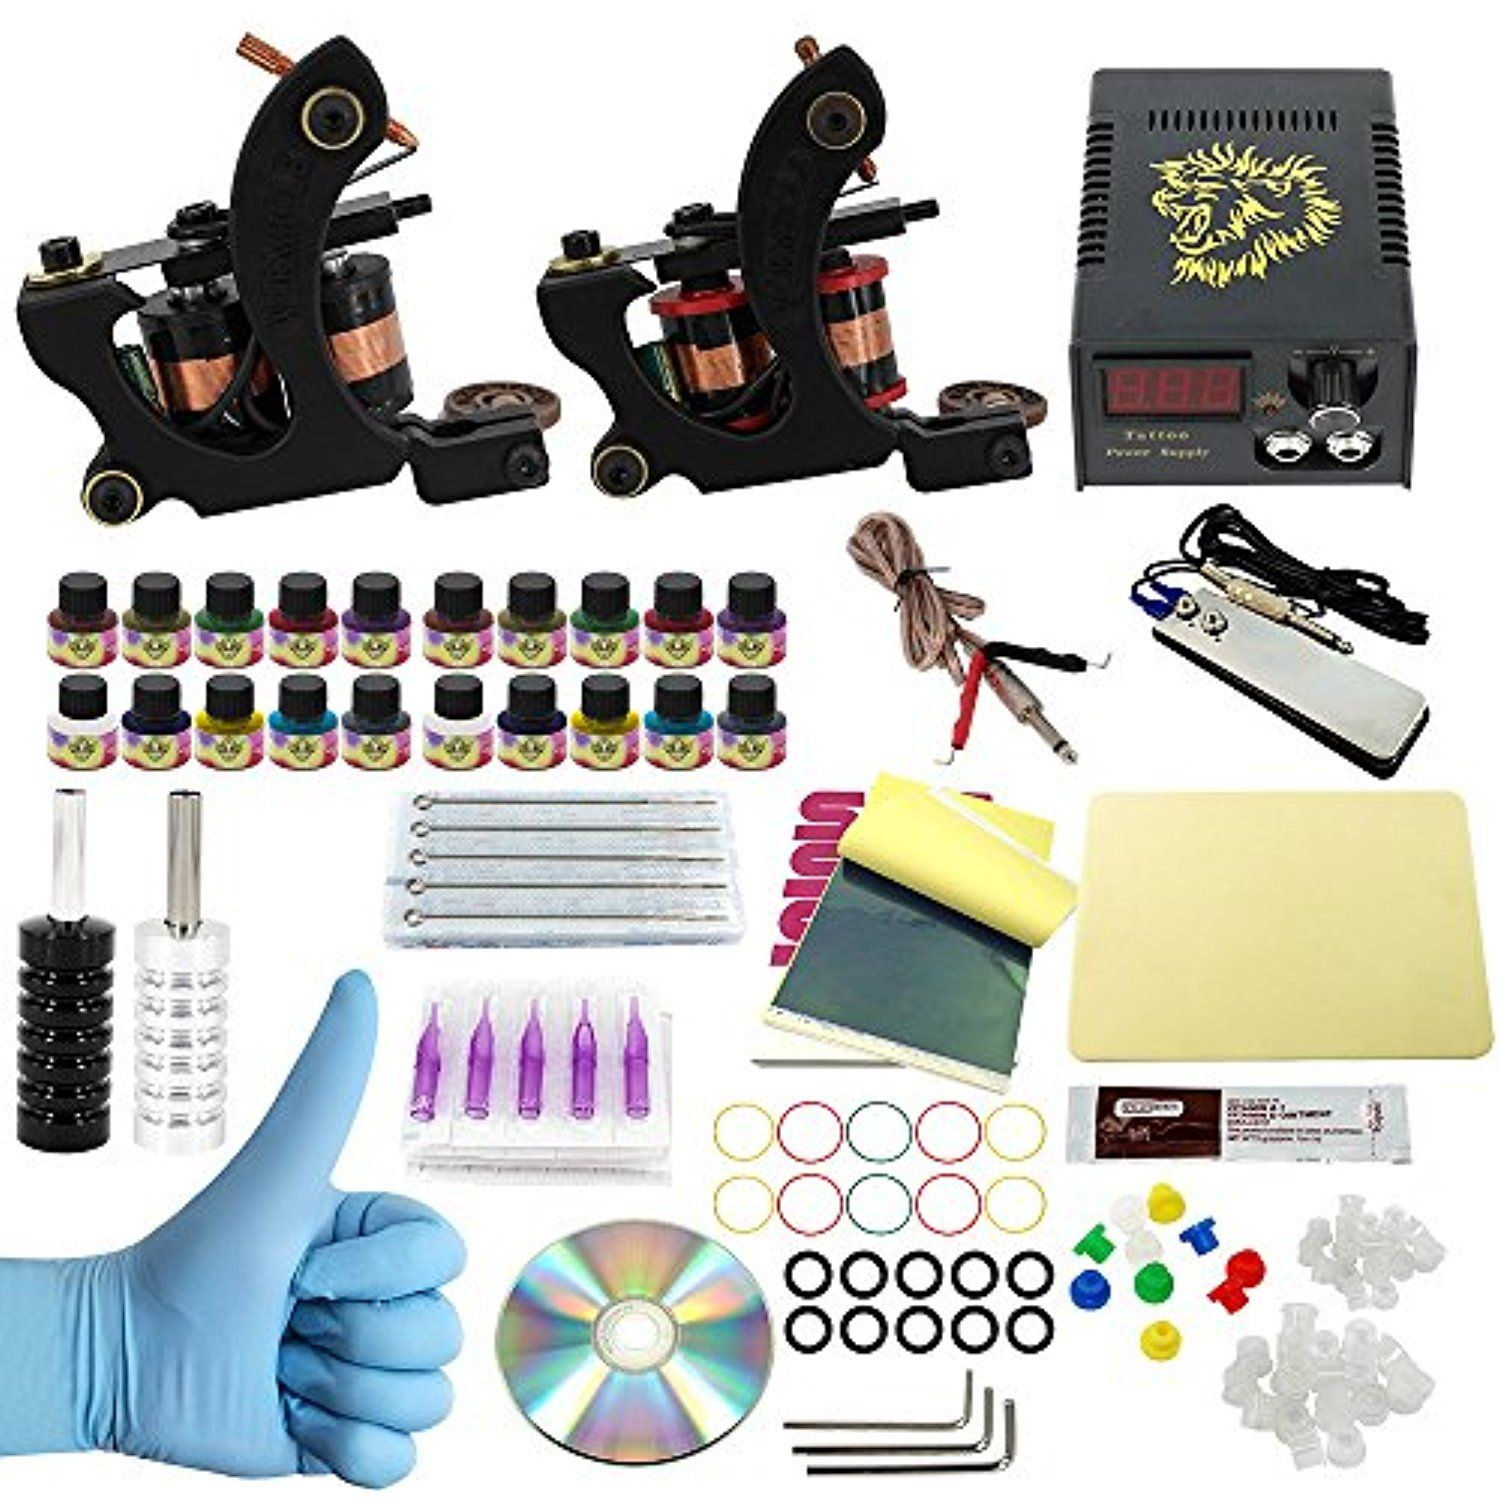 Wormhole Tattoo Complete Kit 2 Machines Power Supply Coil Machine Diagram 20 Needles Color Inks